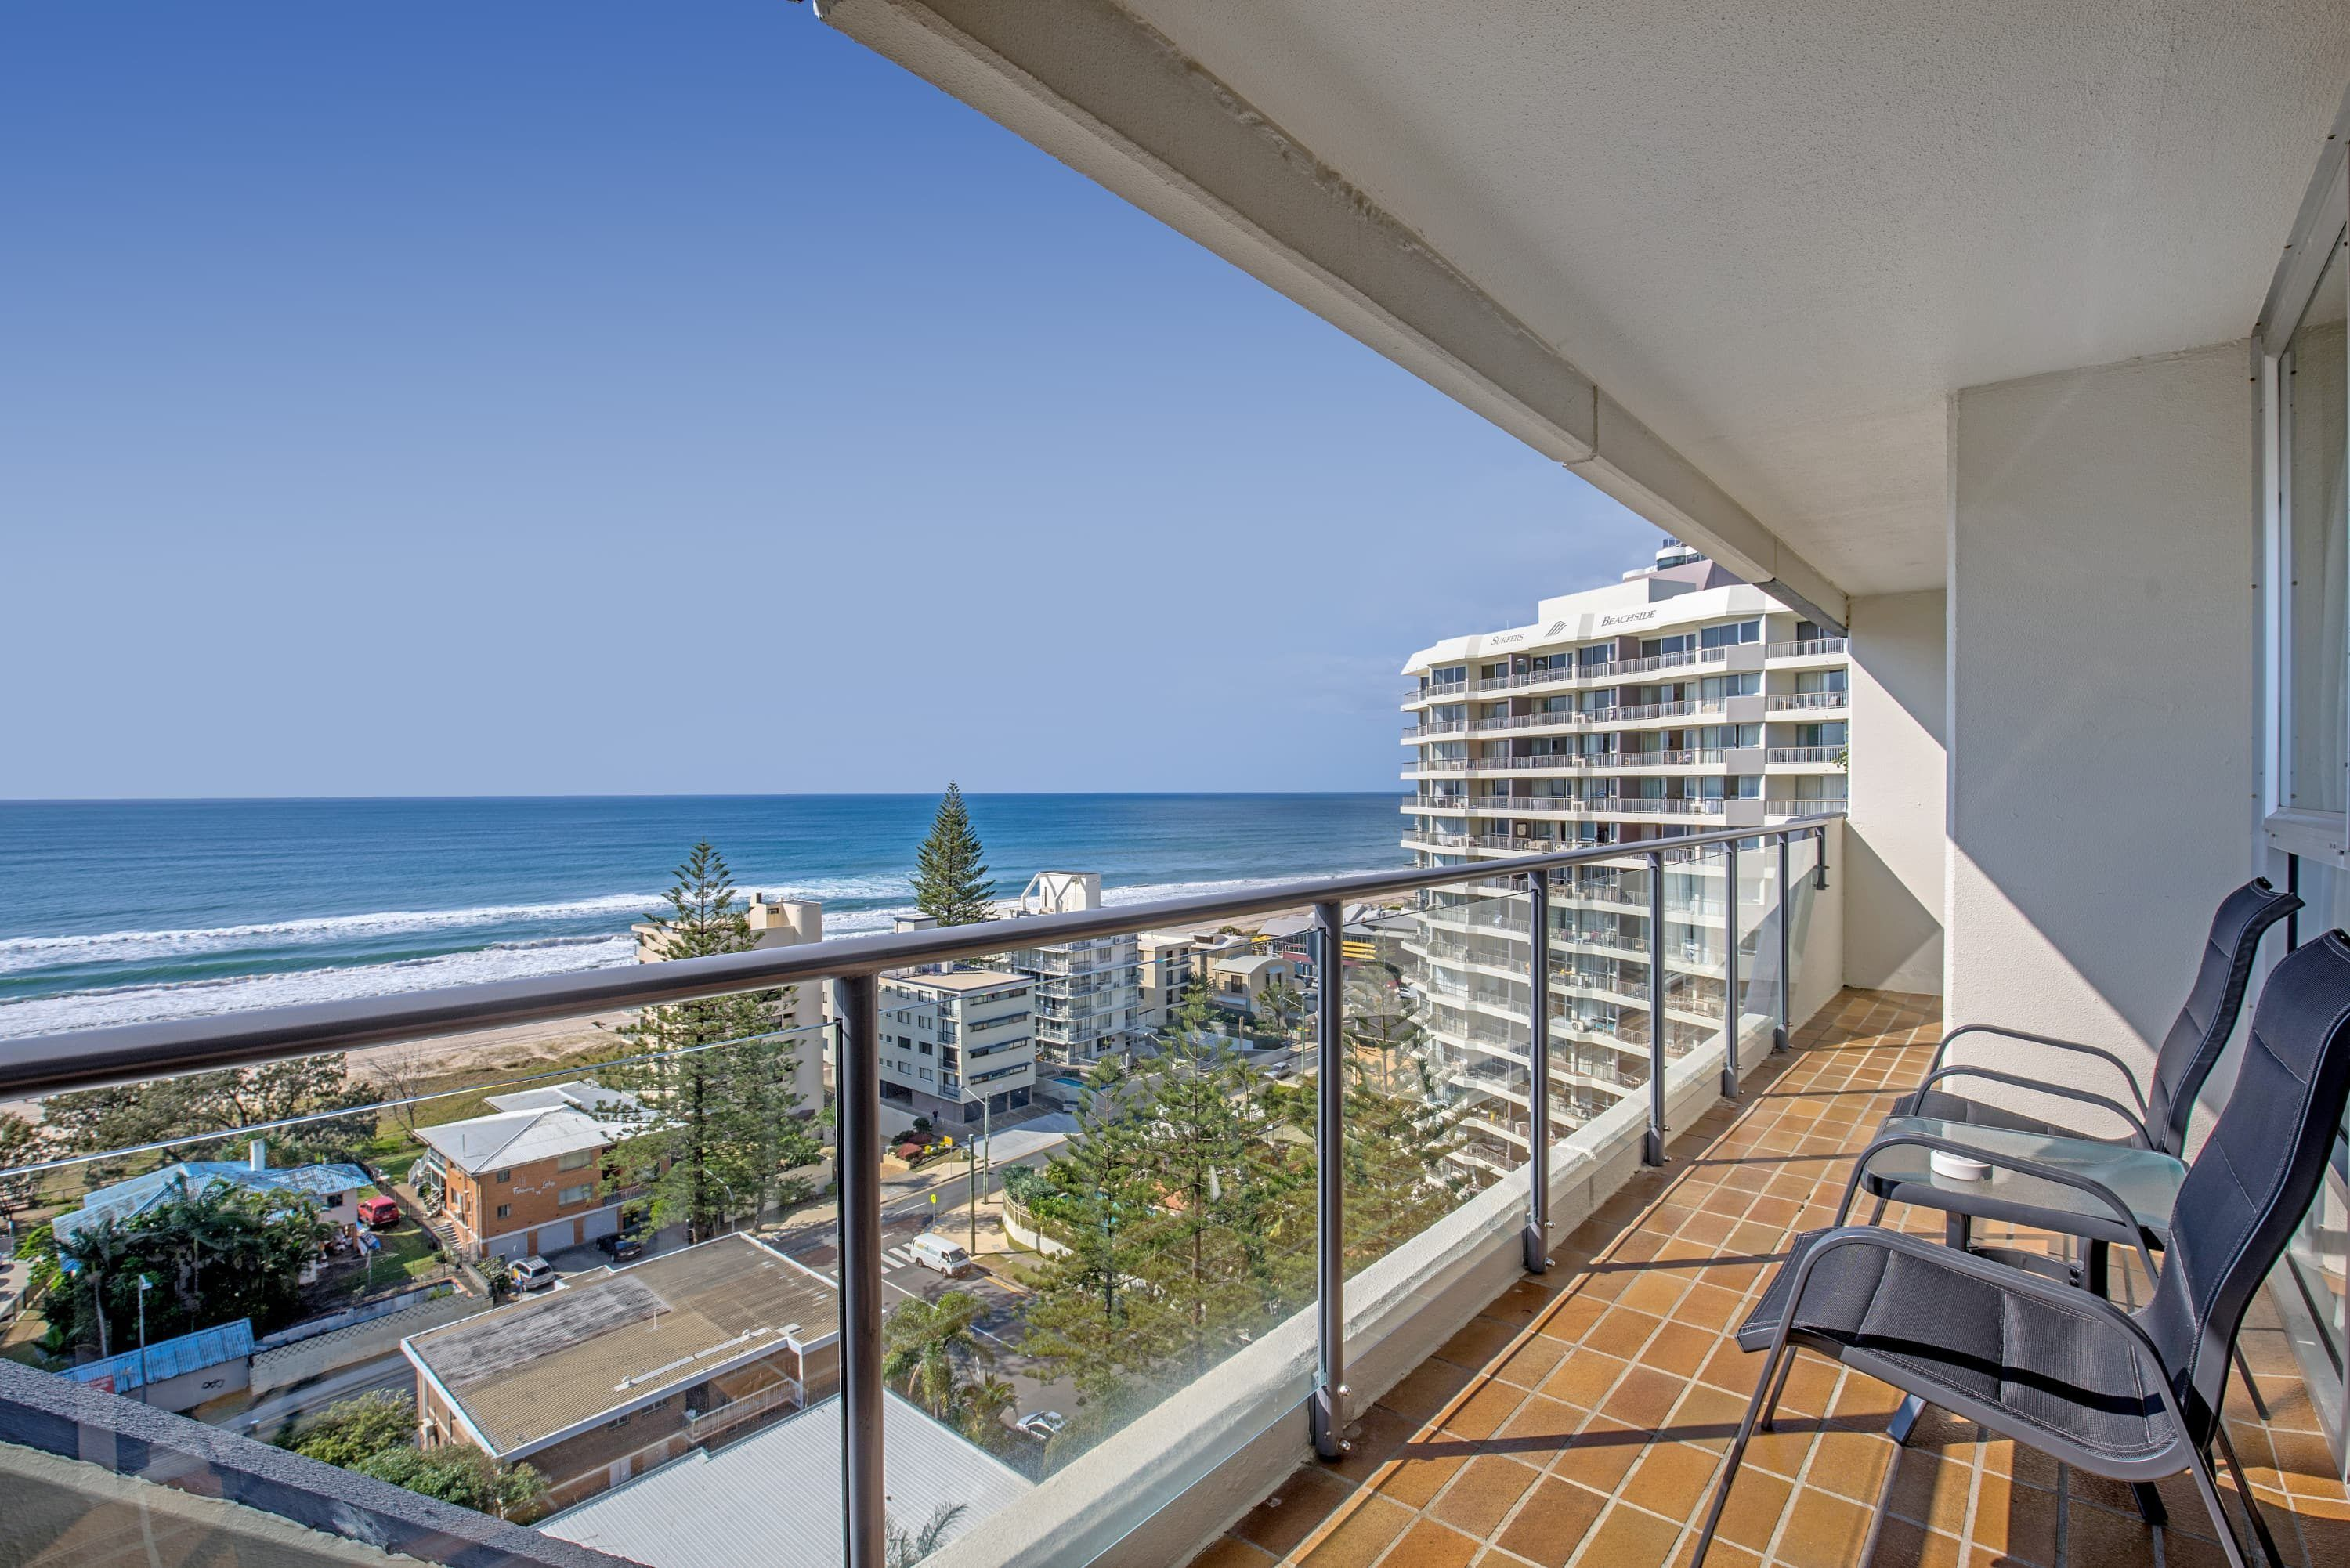 Gold Coast Beach Resort